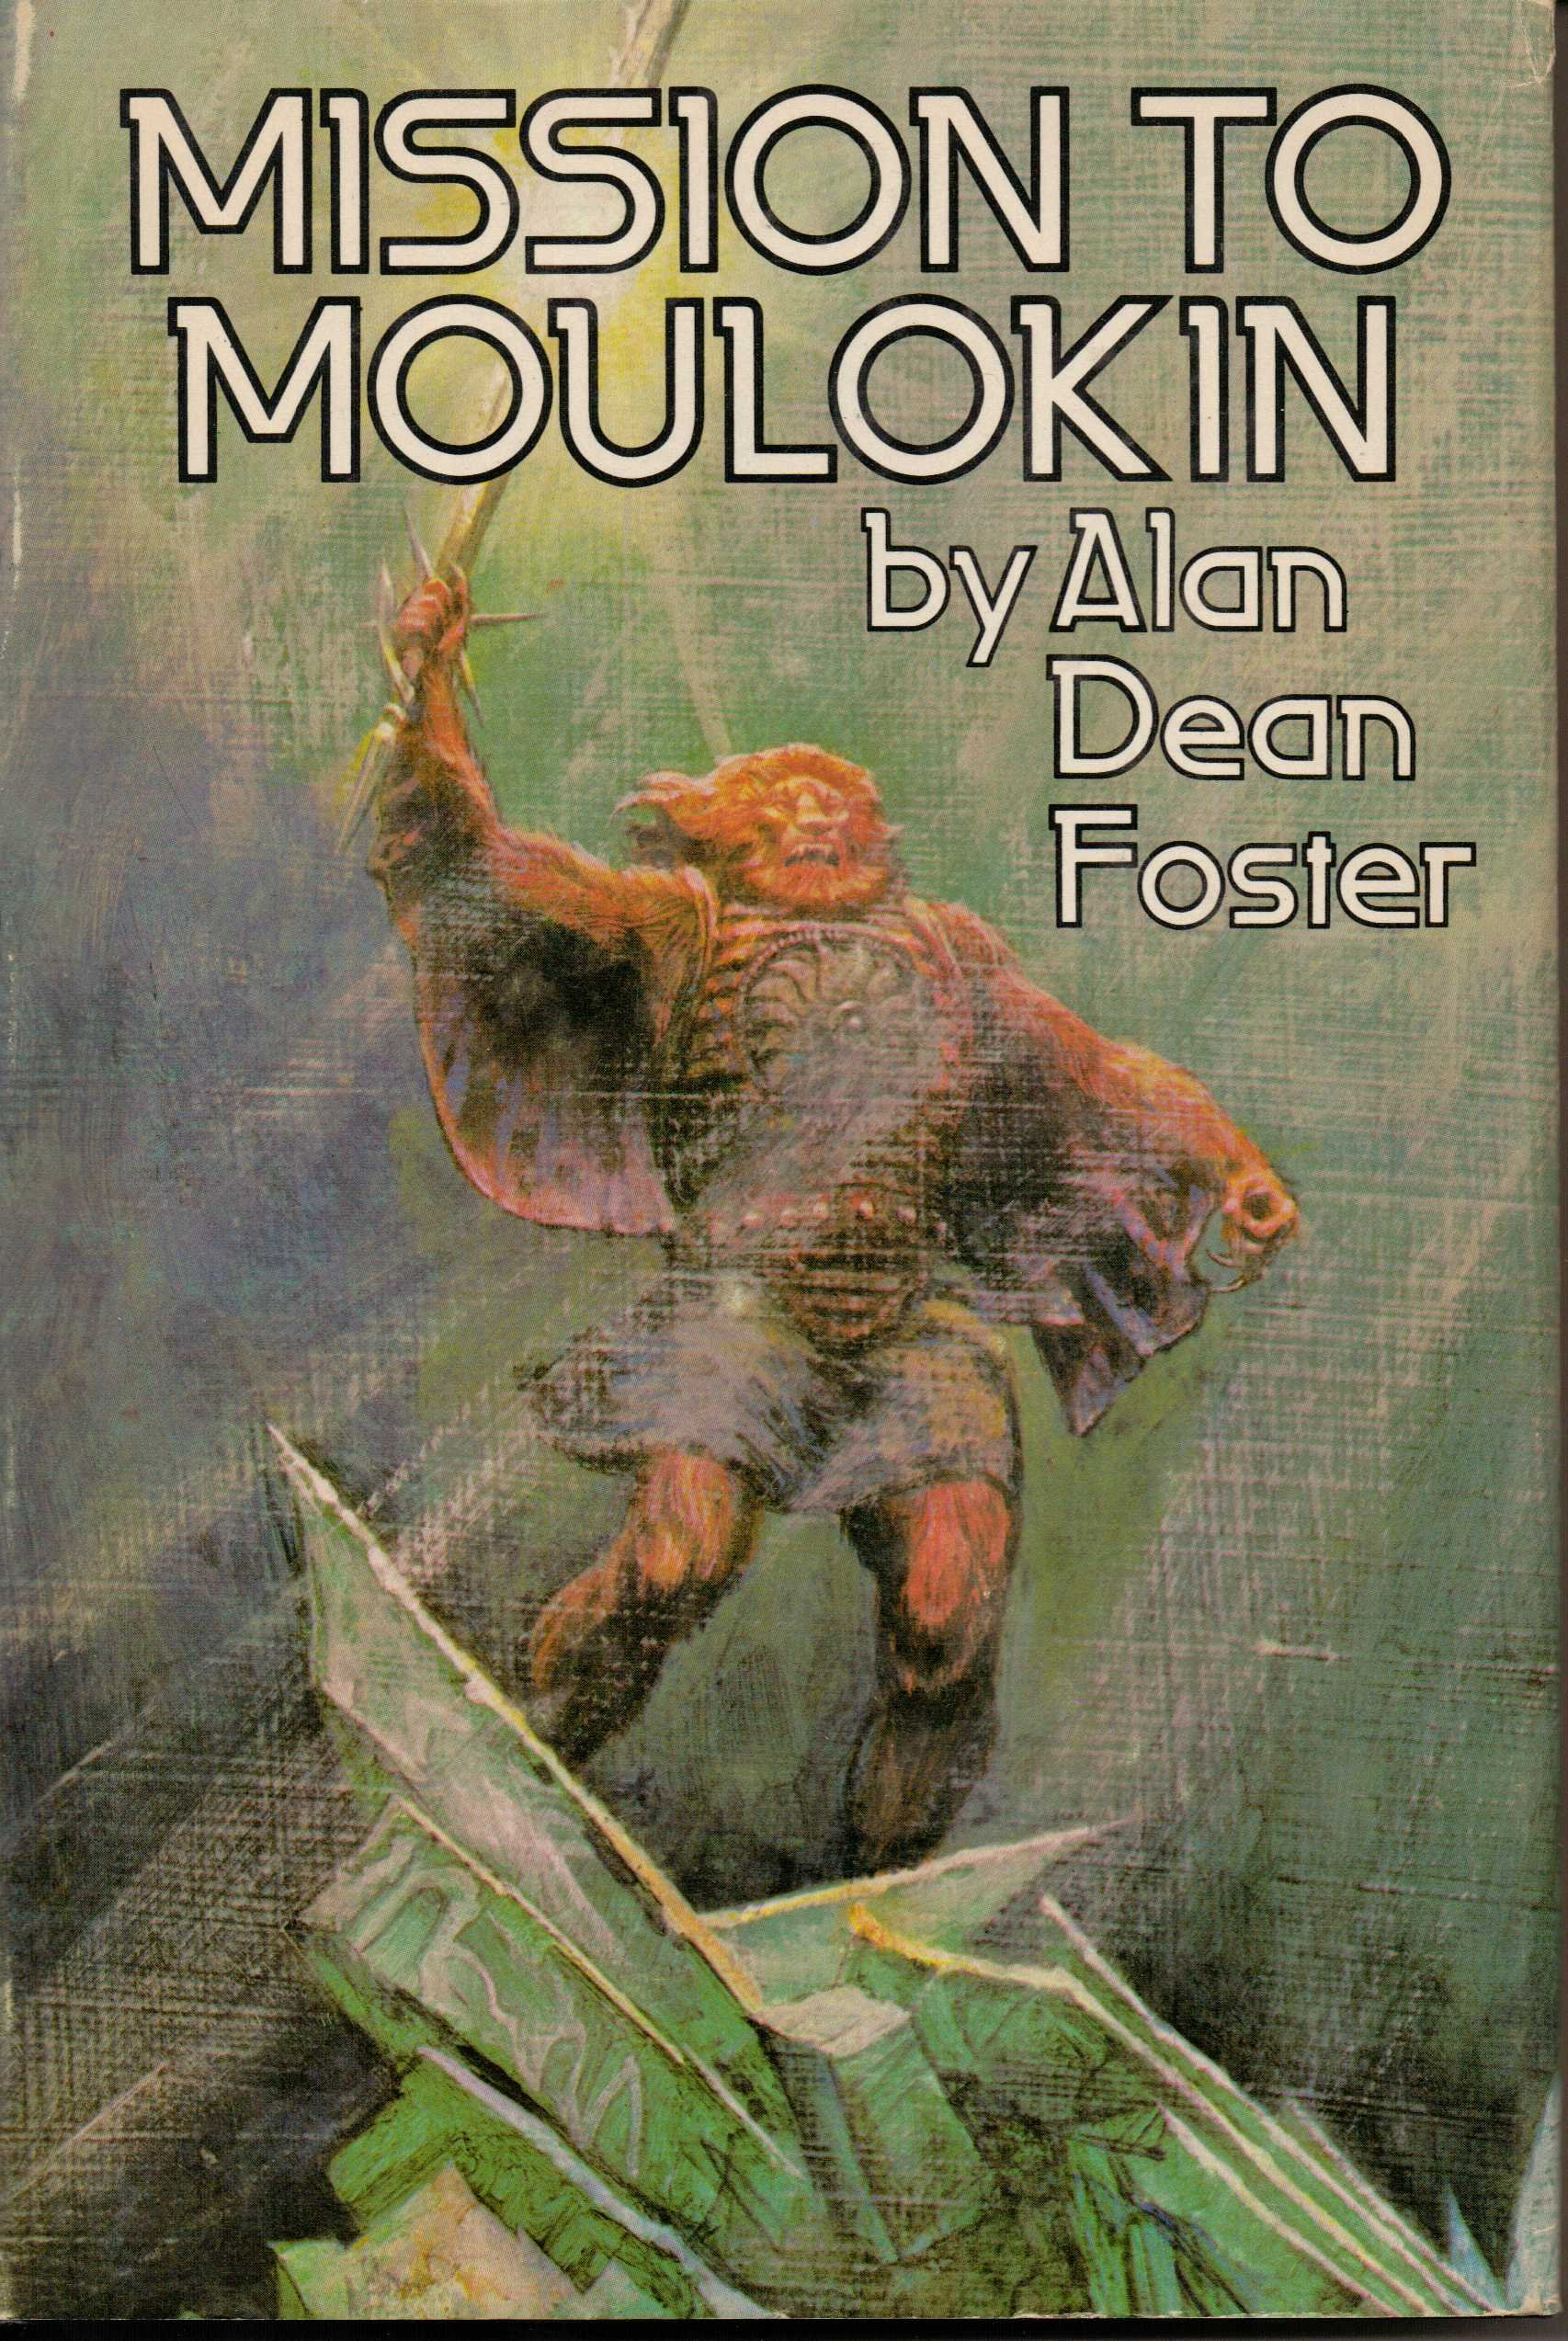 Mission to Moulokin, Foster, Alan Dean